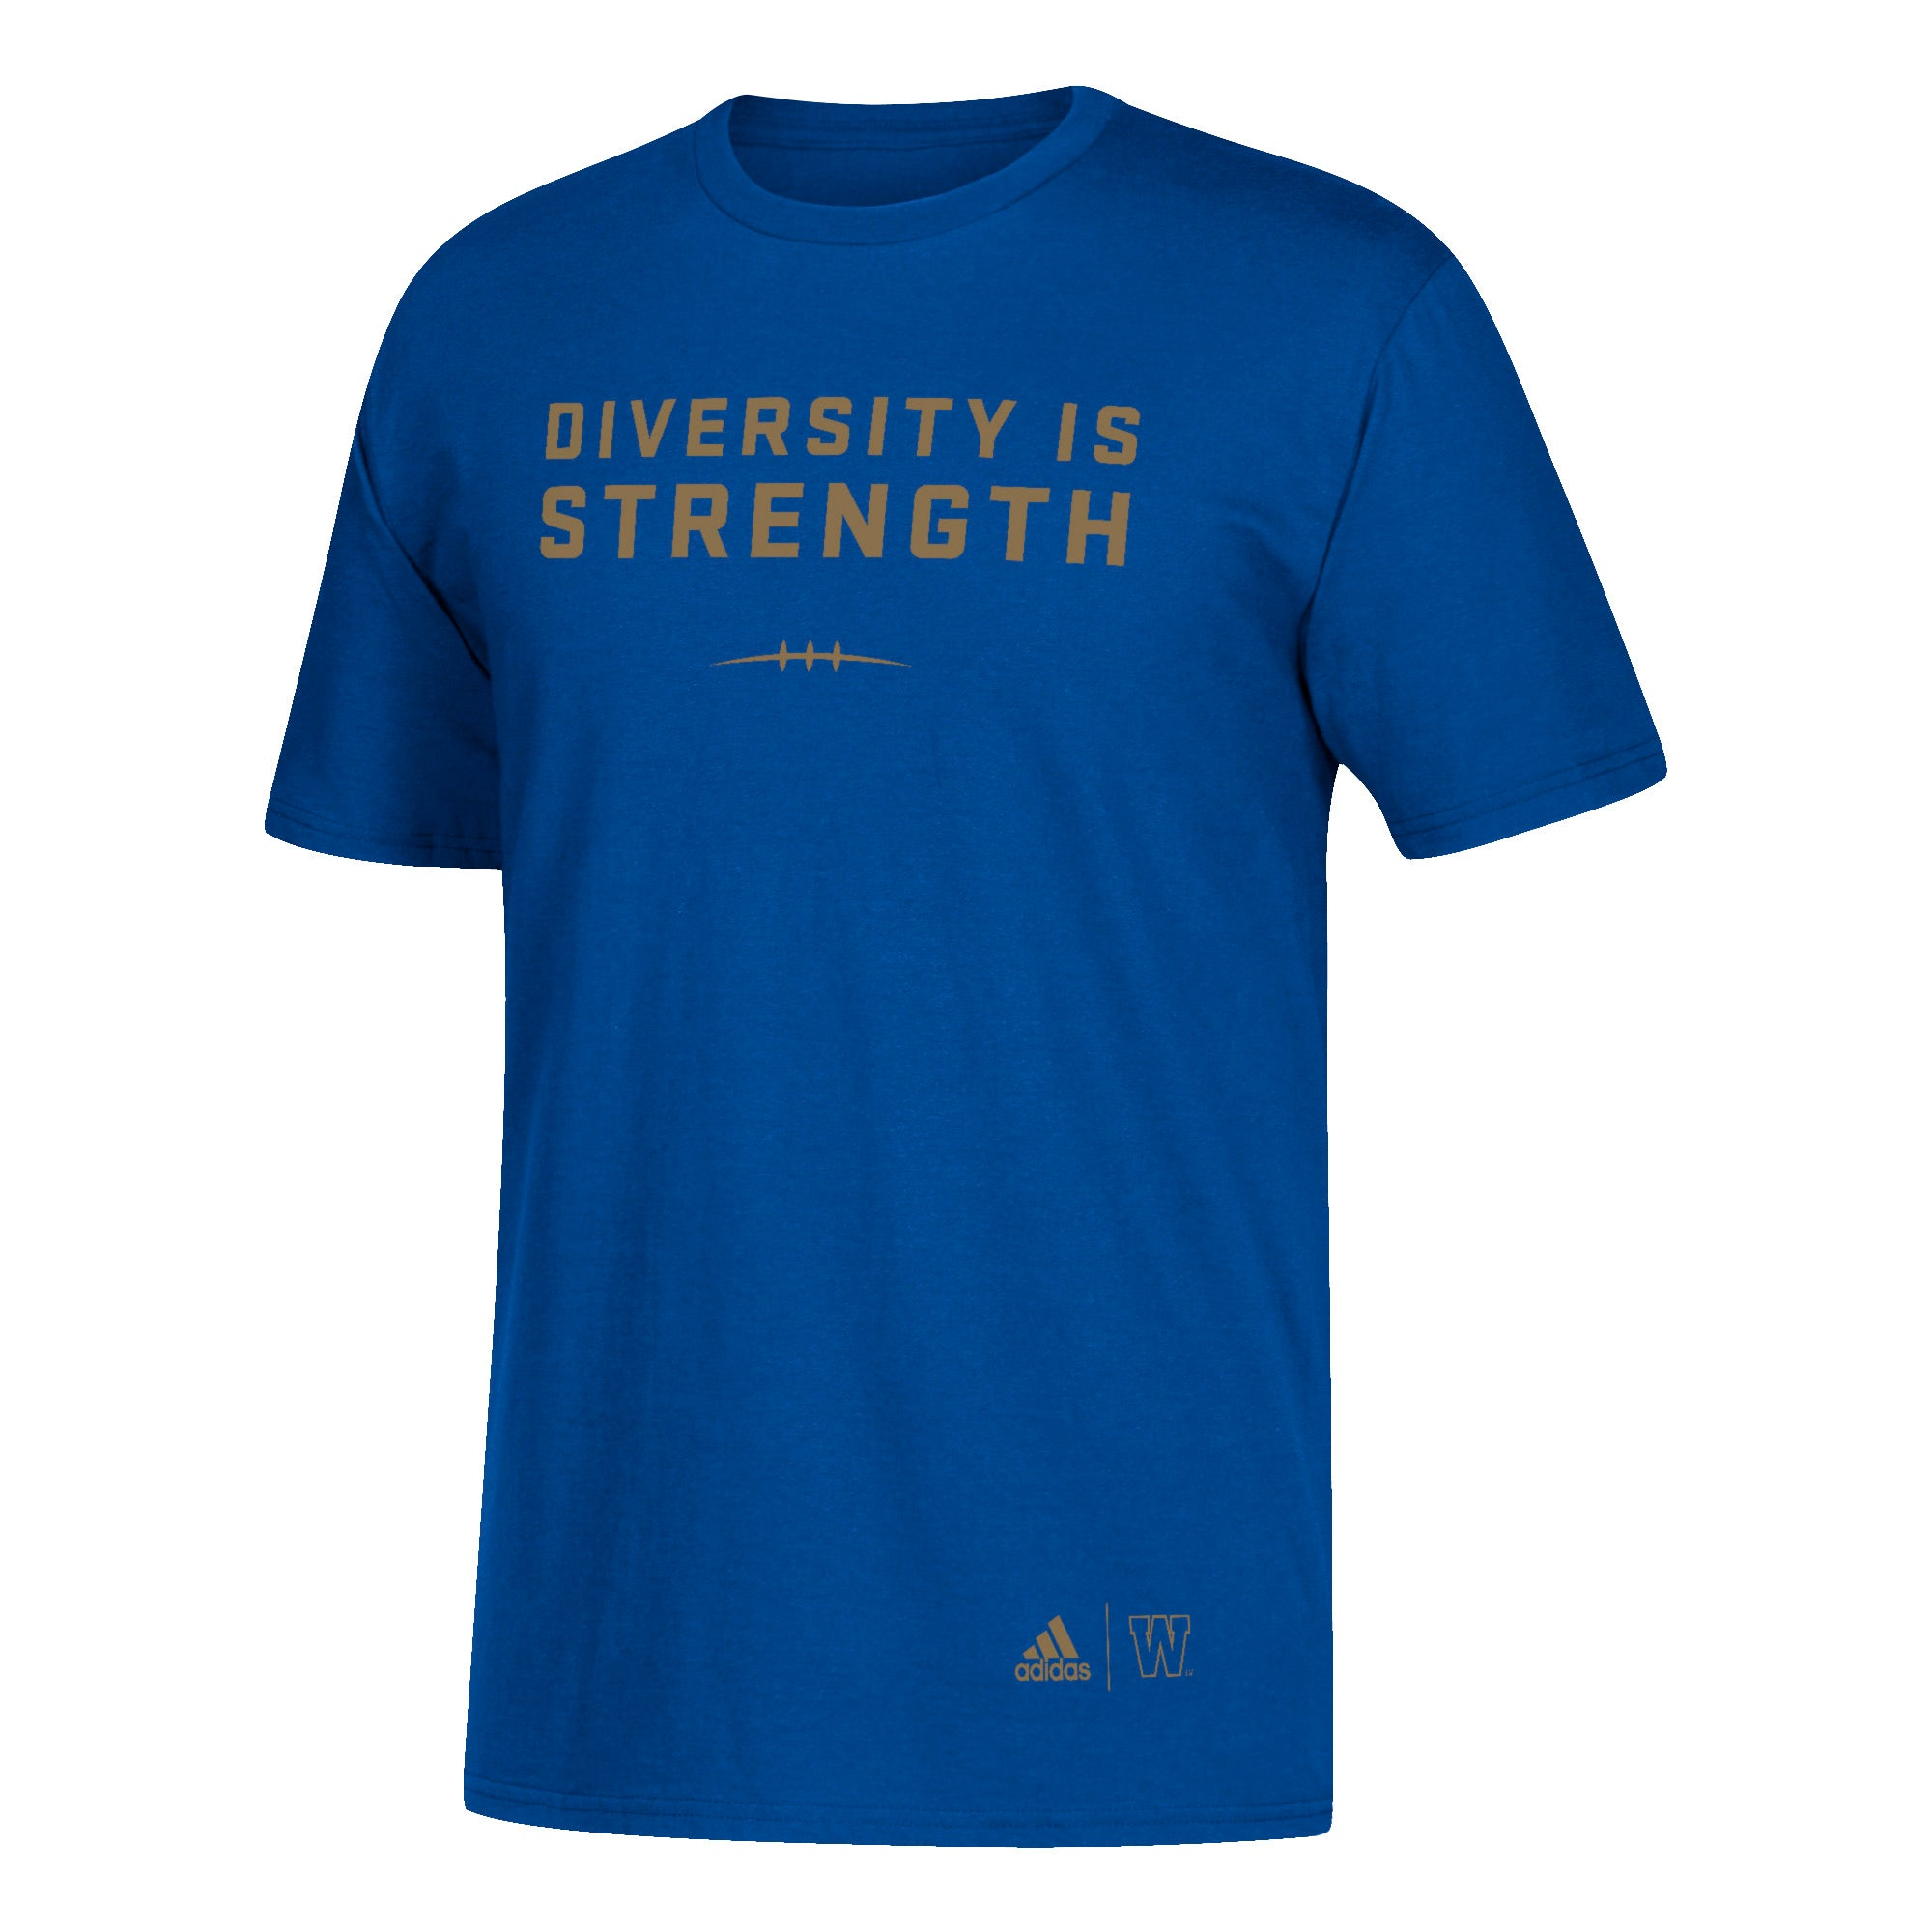 Winnipeg Blue Bombers Diversity is Strength Shirt